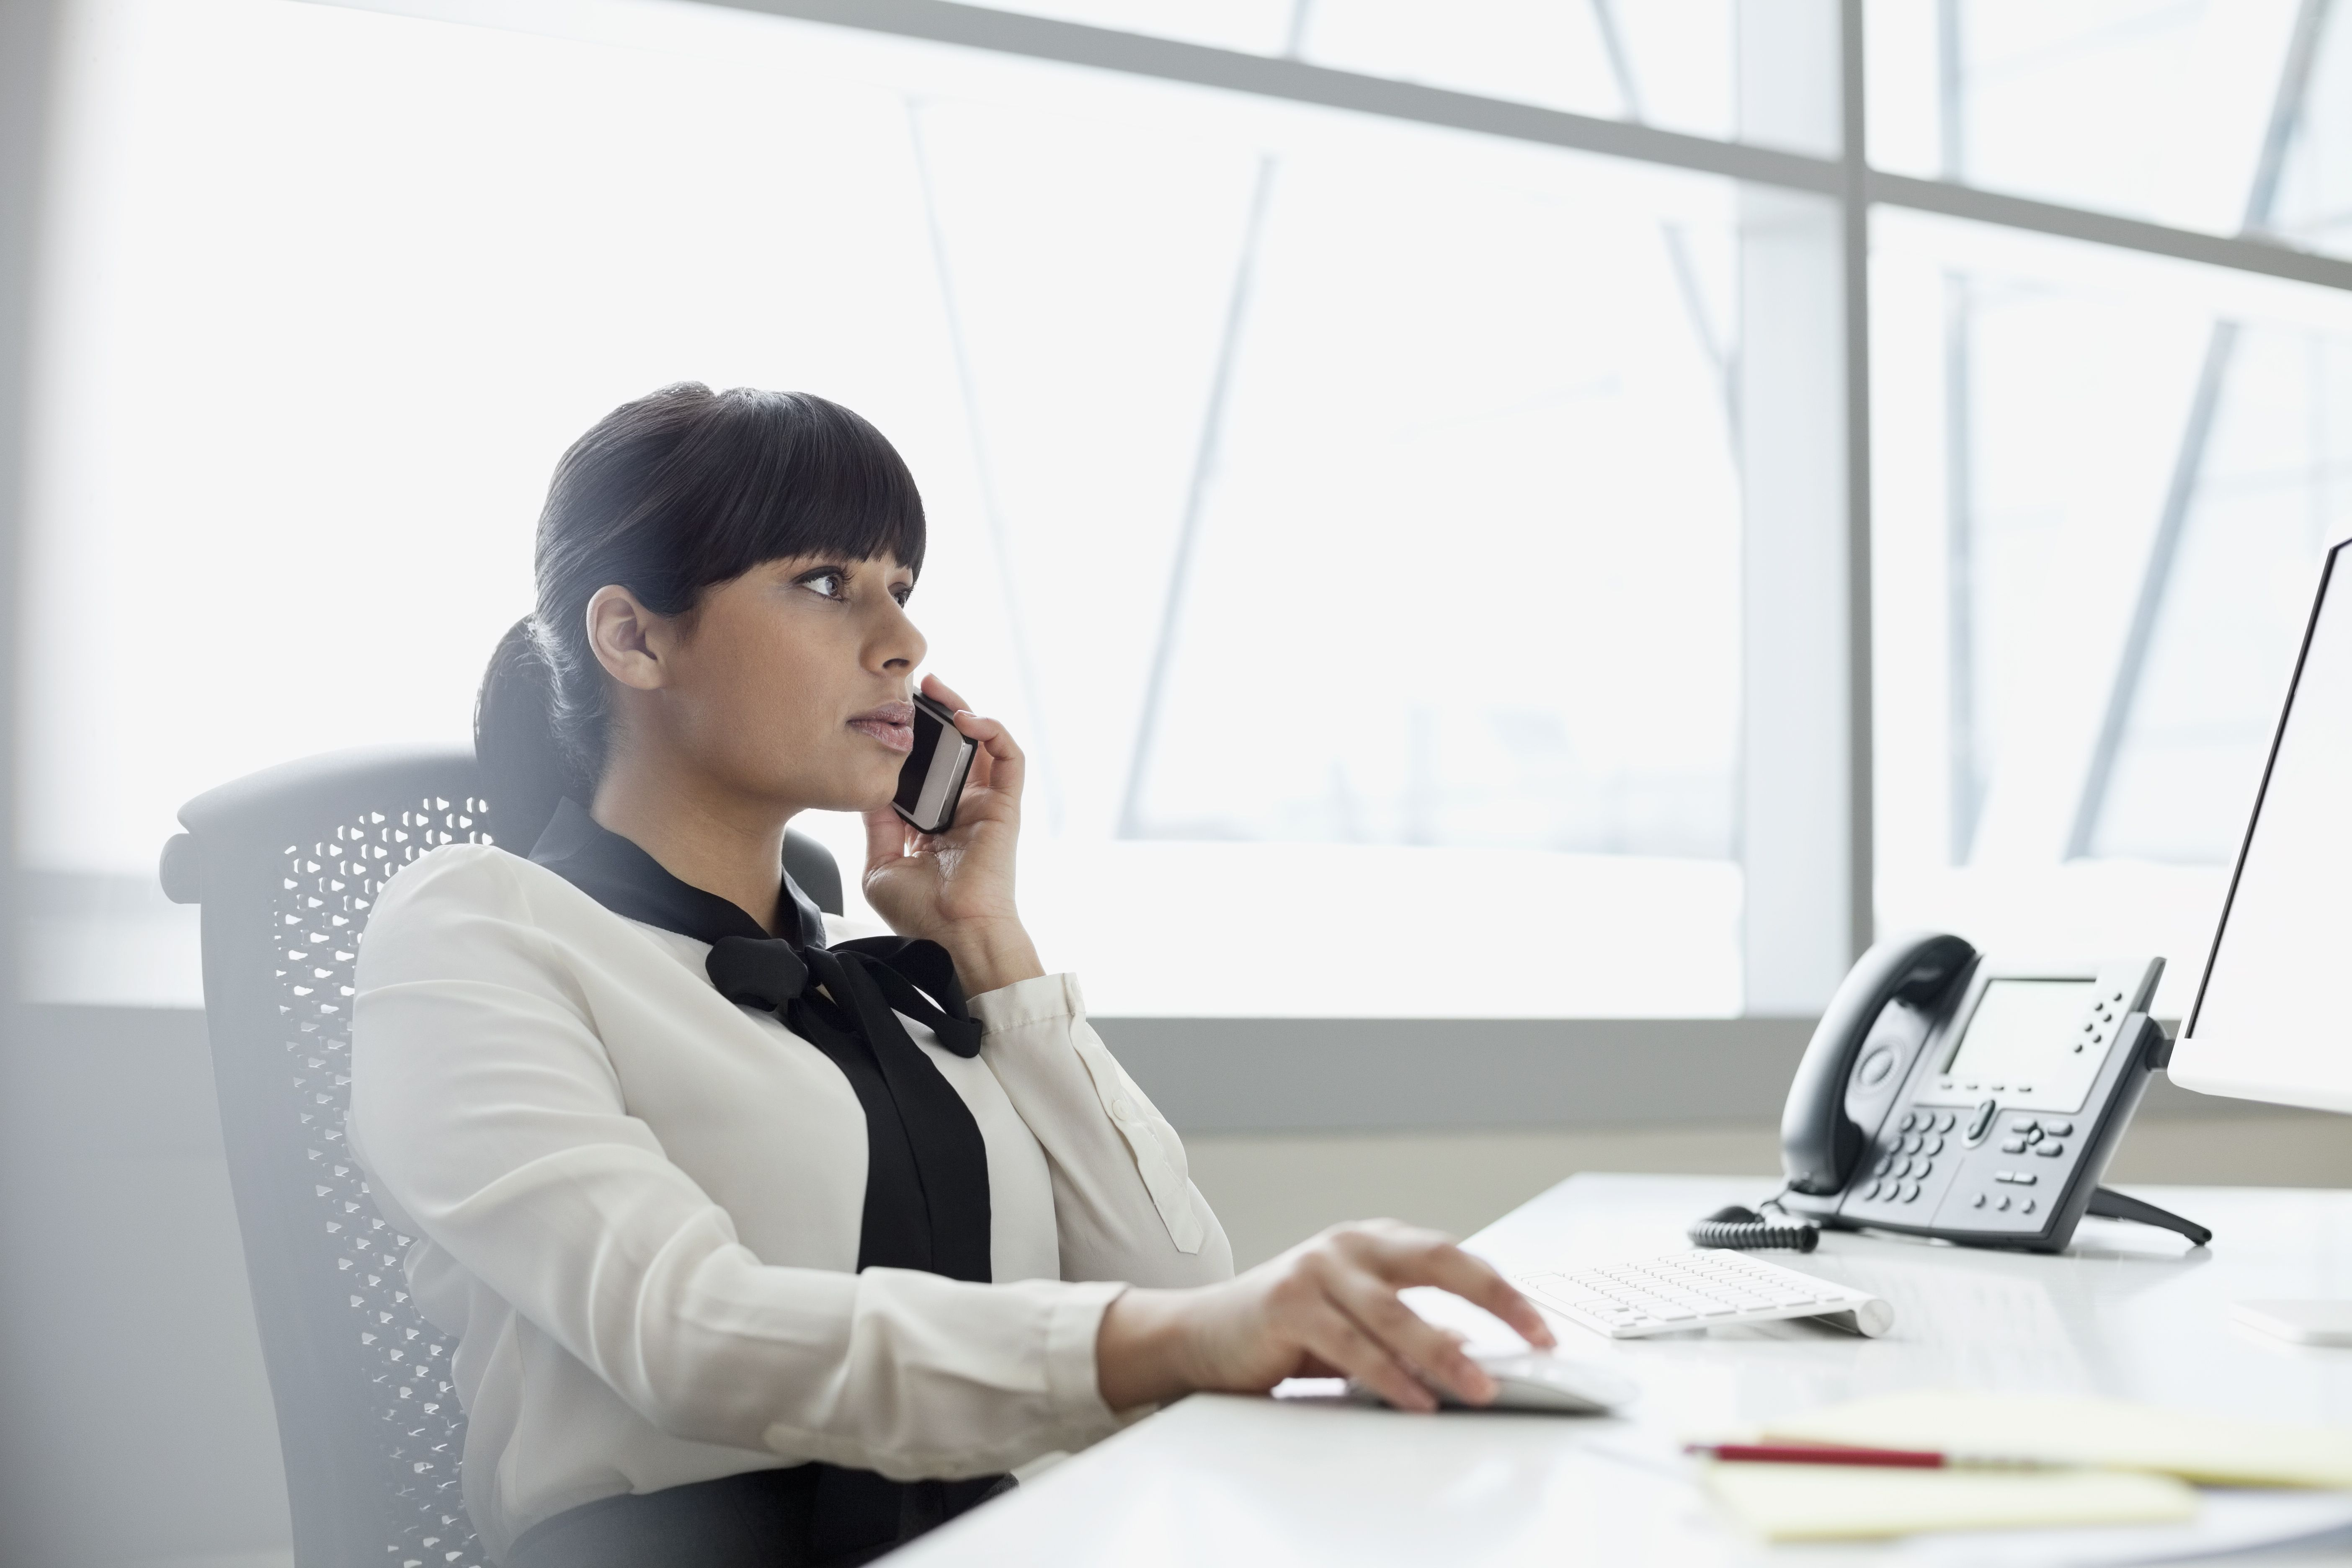 A businesswoman using mobile phone in office